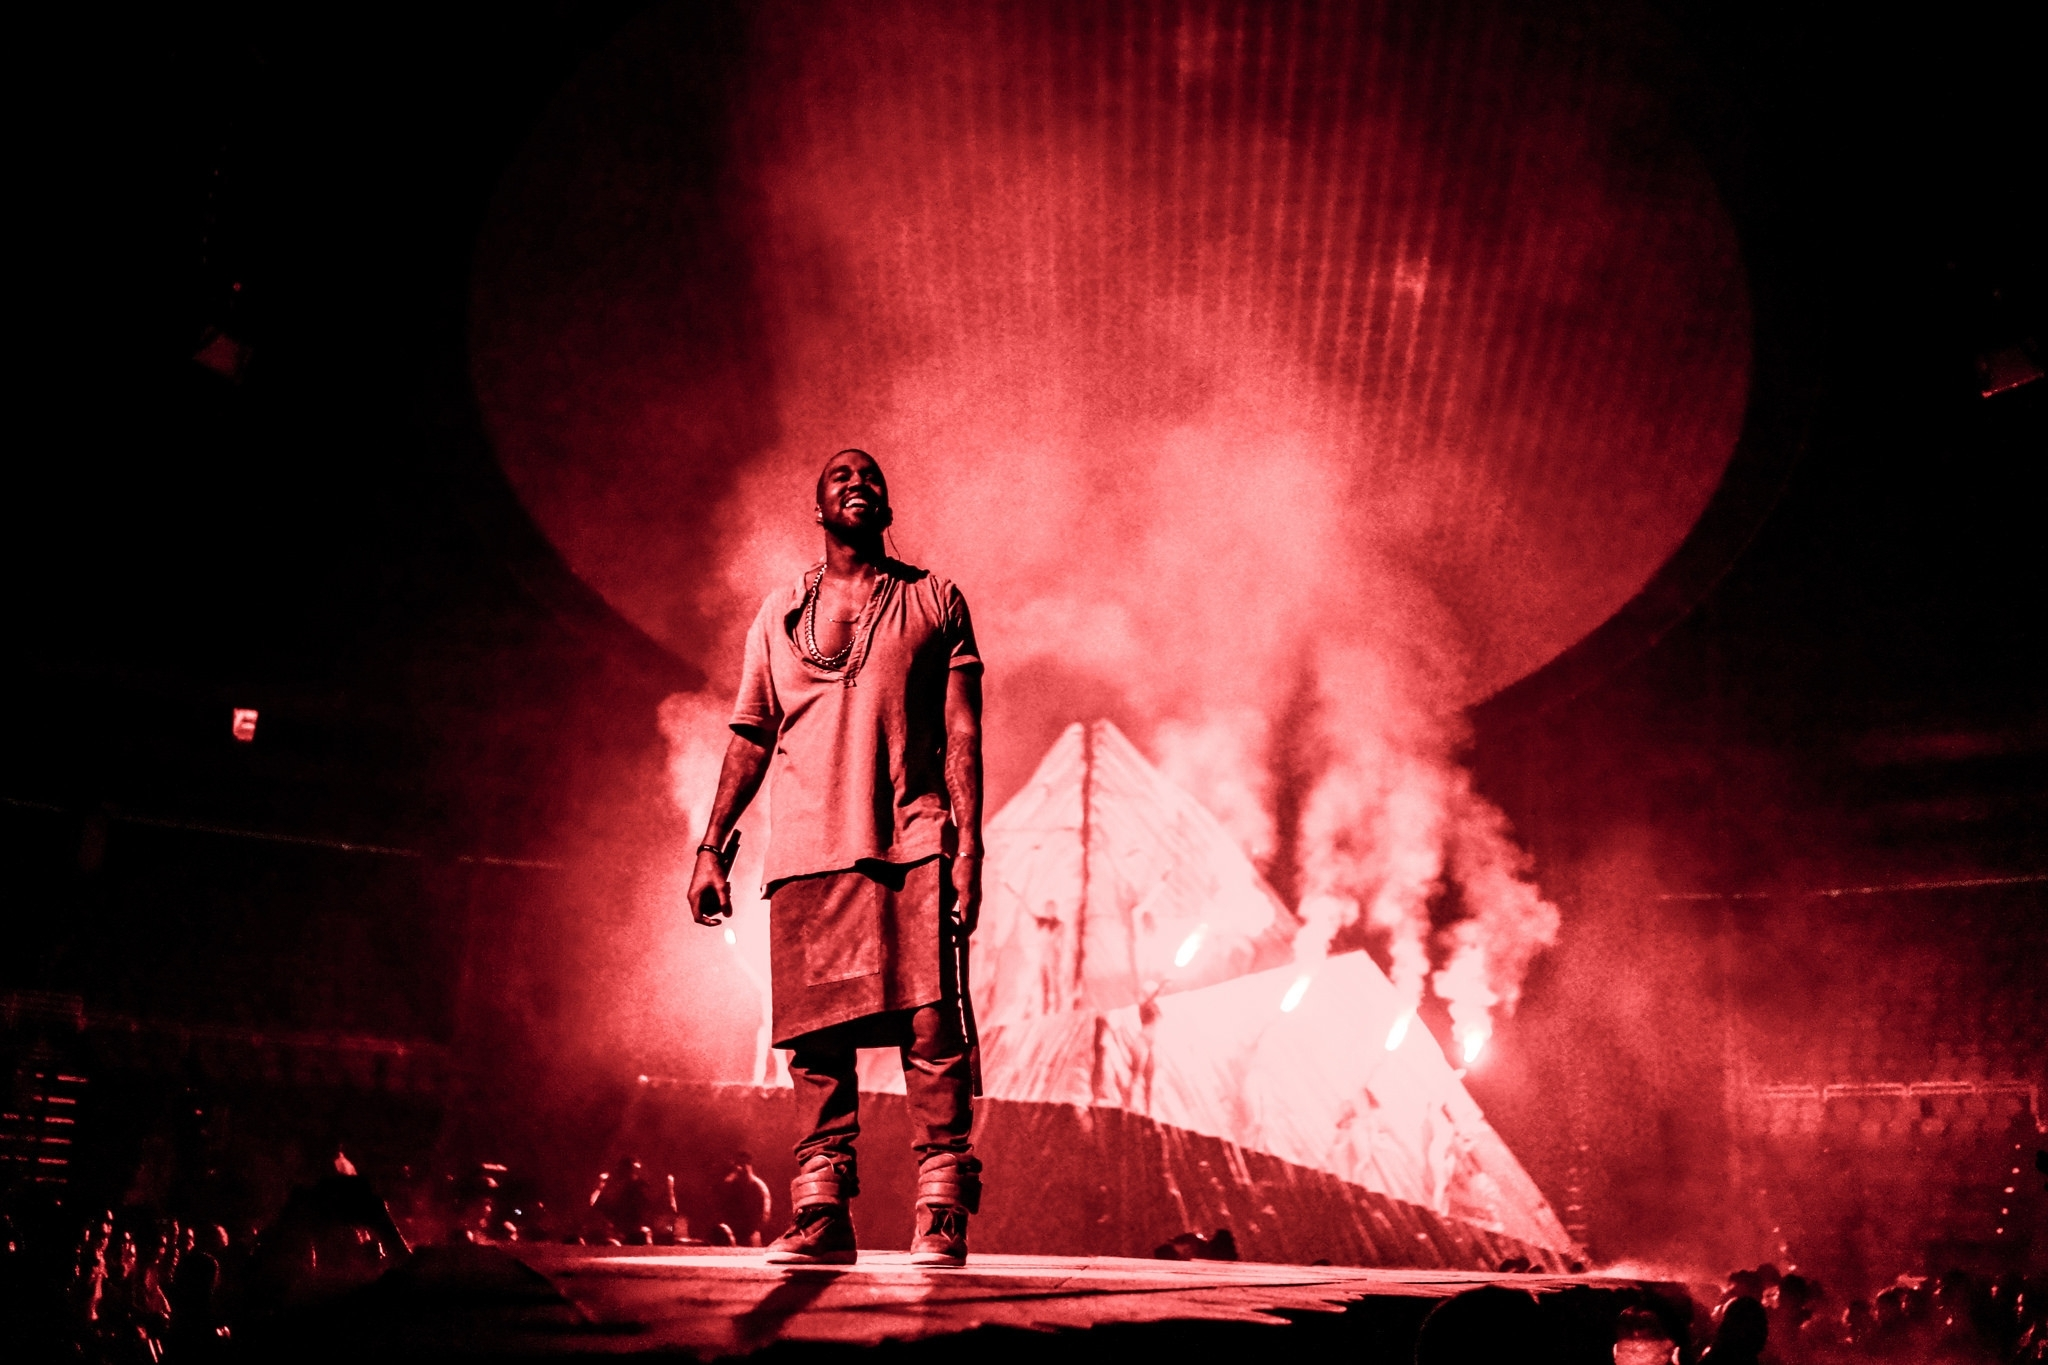 kanye west wallpaper hd (76+ images)